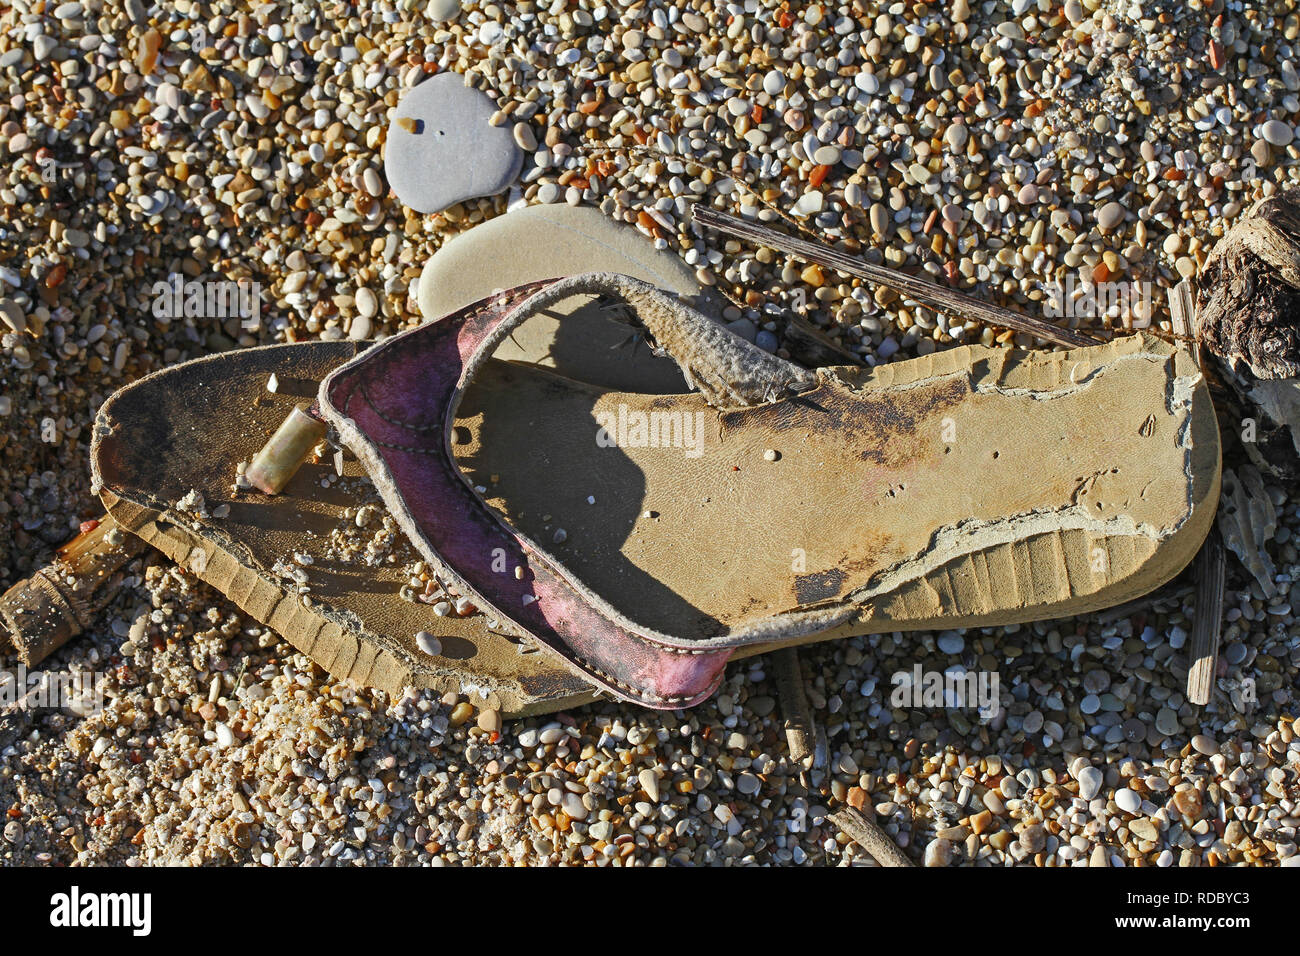 shoe flip-flop or sandal washed up on the beach in winter on the Adriatic coast near Ancona in Italy - Stock Image